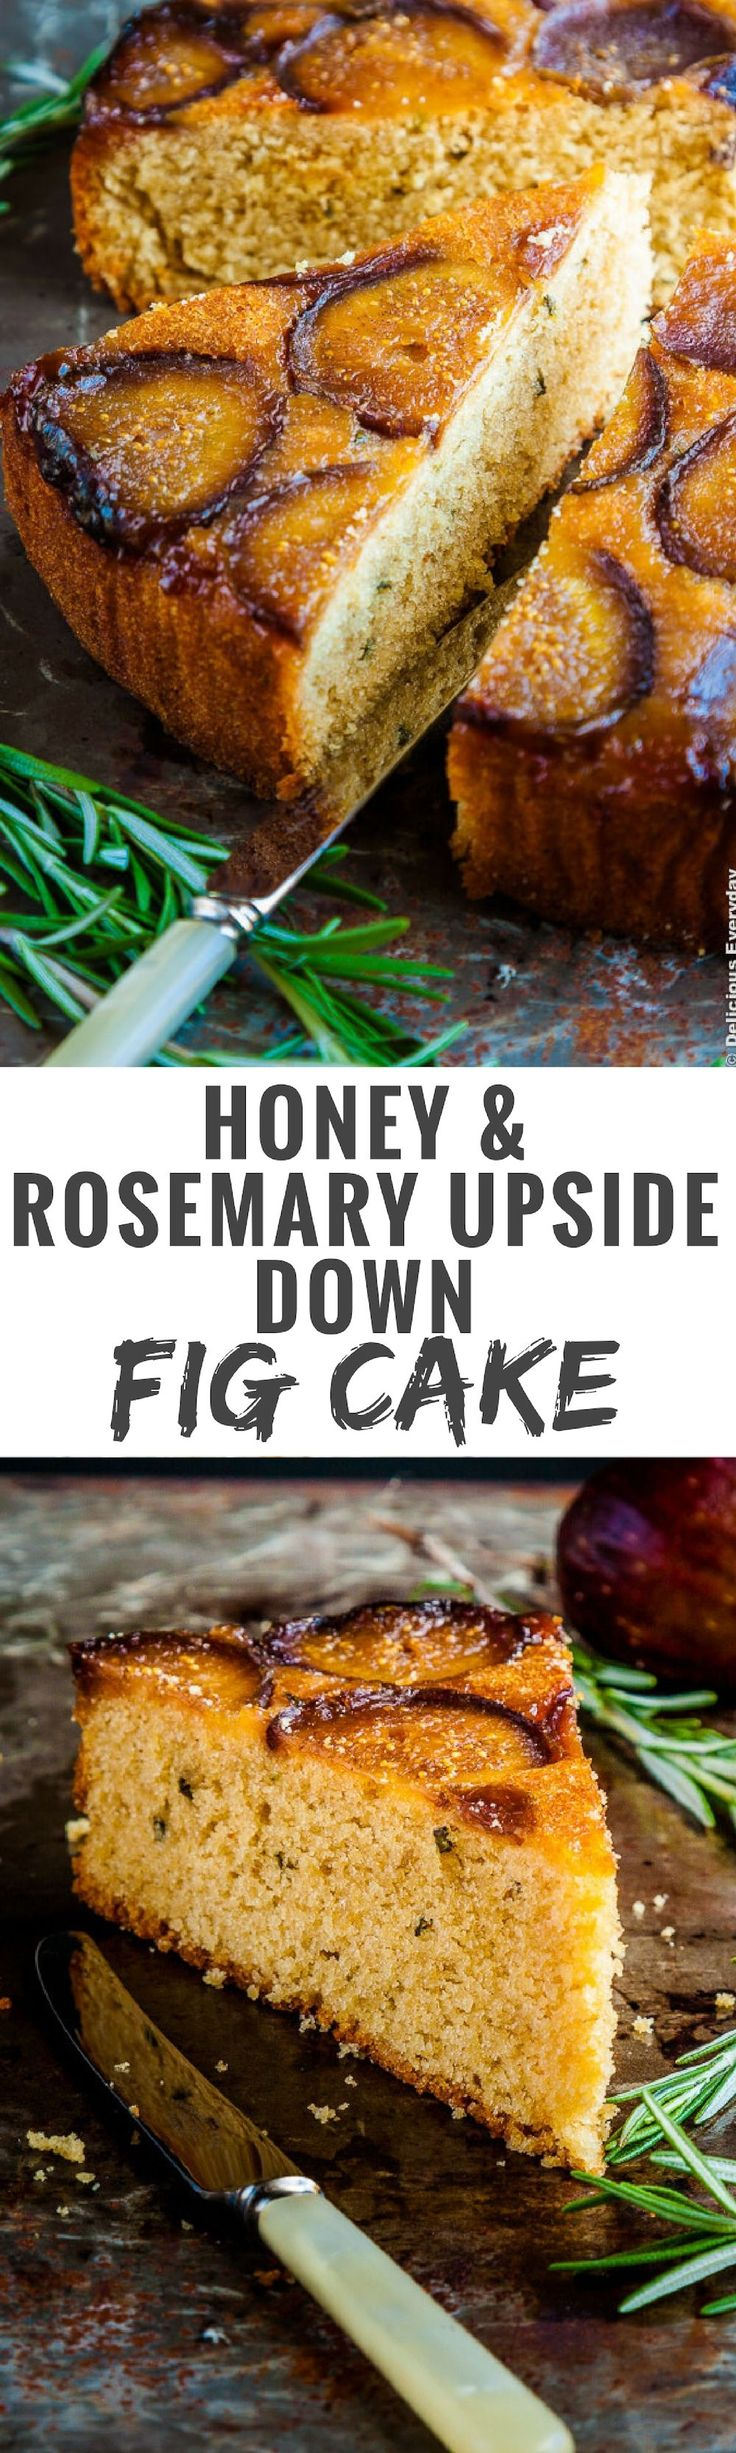 This Upside Down Fig Cake is a beautiful cake, with a tender crumb ...